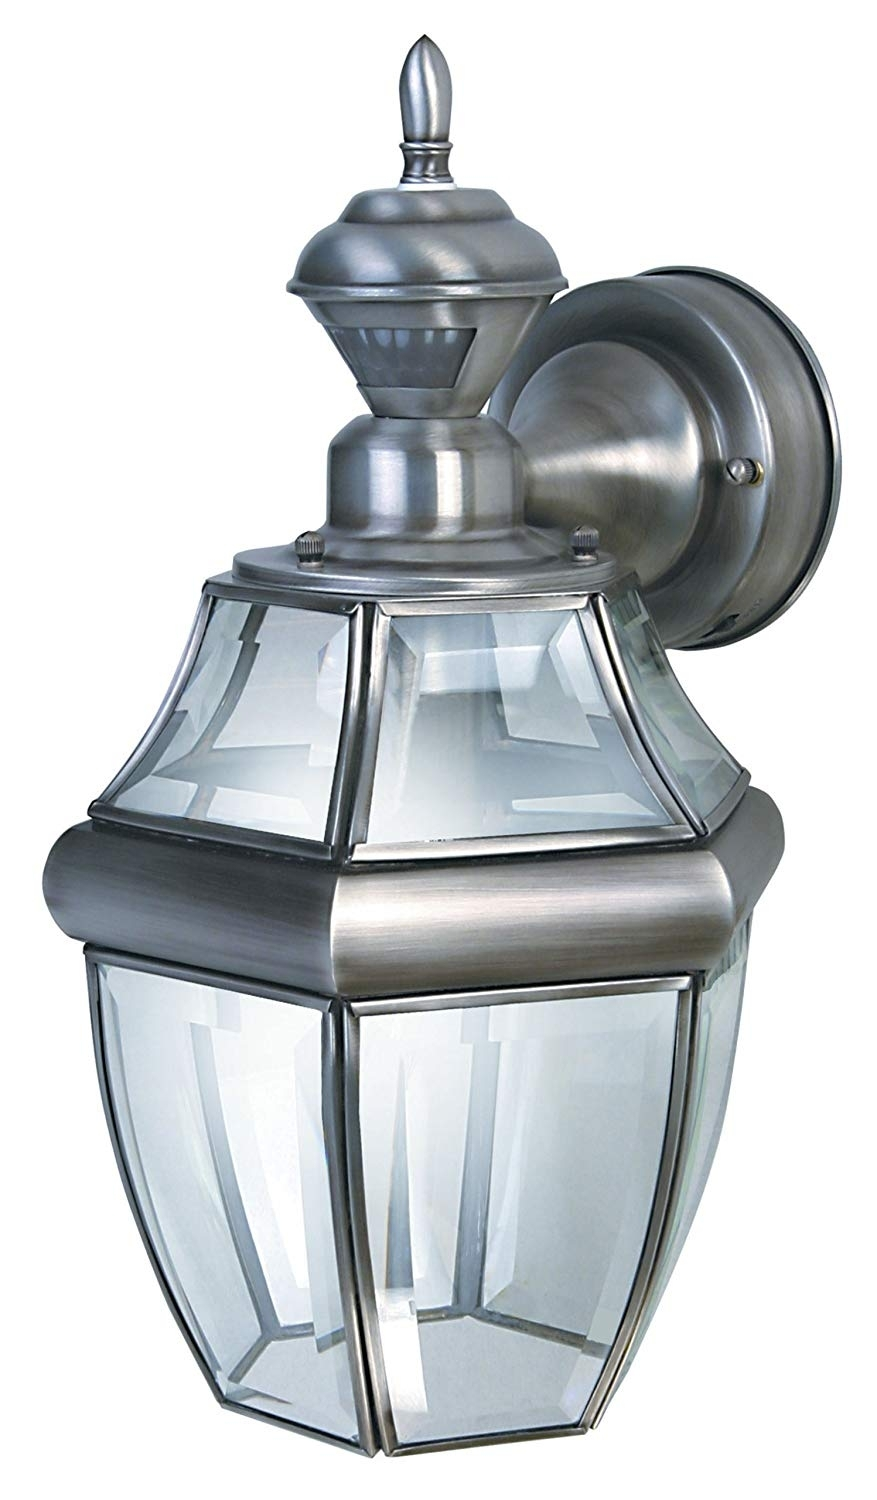 Heath Zenith Sl-4166-Sa Motion-Activated Six-Sided Carriage Light with regard to Outdoor Motion Lanterns (Image 8 of 20)